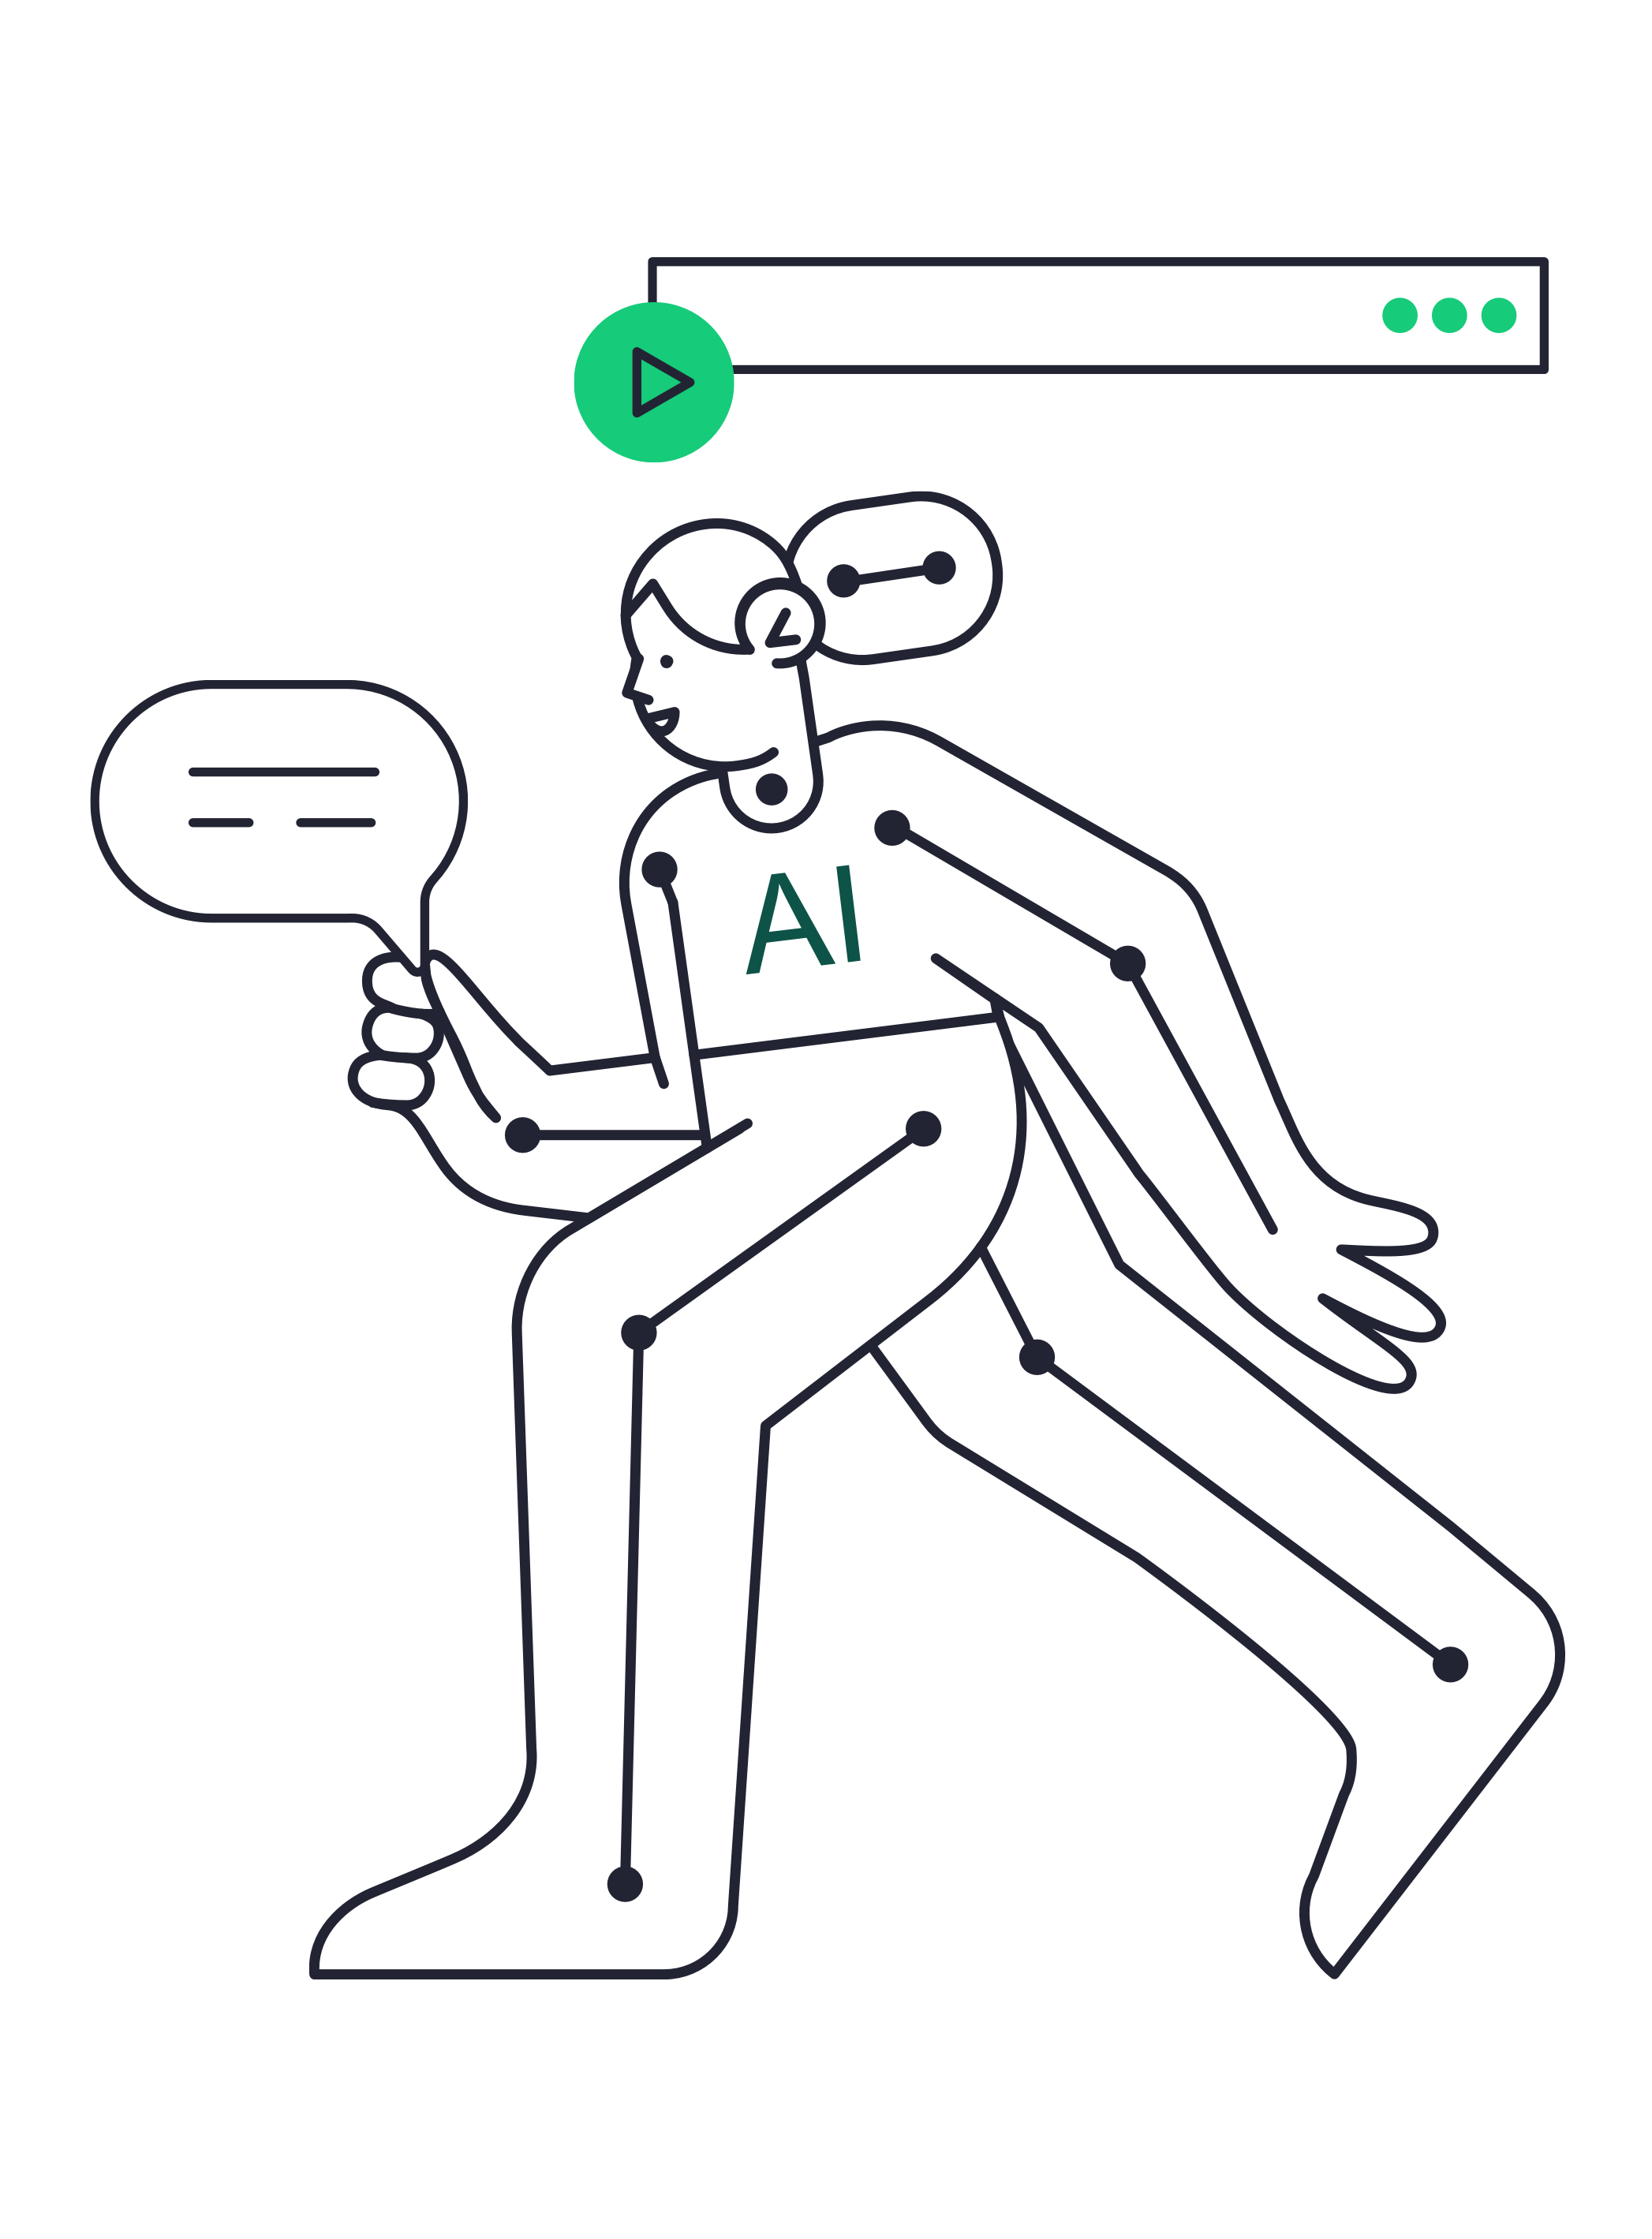 Person with AI outfit running